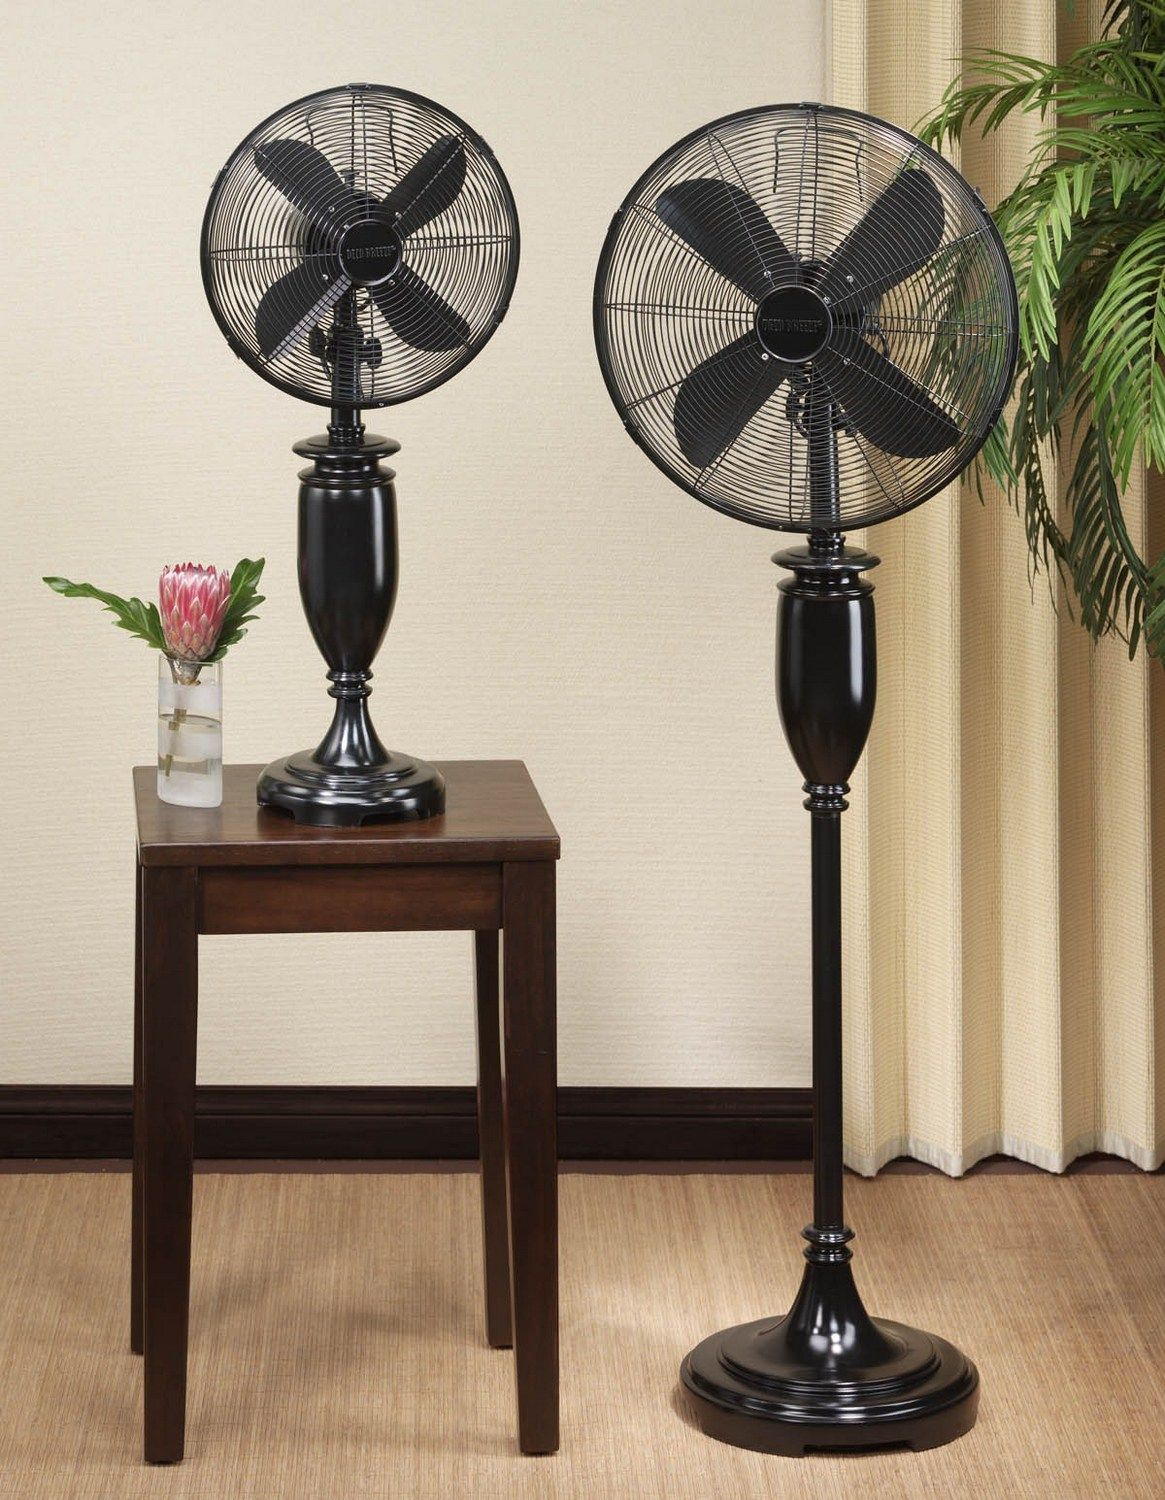 Not Ordinary Decorative Pedestal Fan Deco Breeze Pedestal Fan Deco Breeze Fan